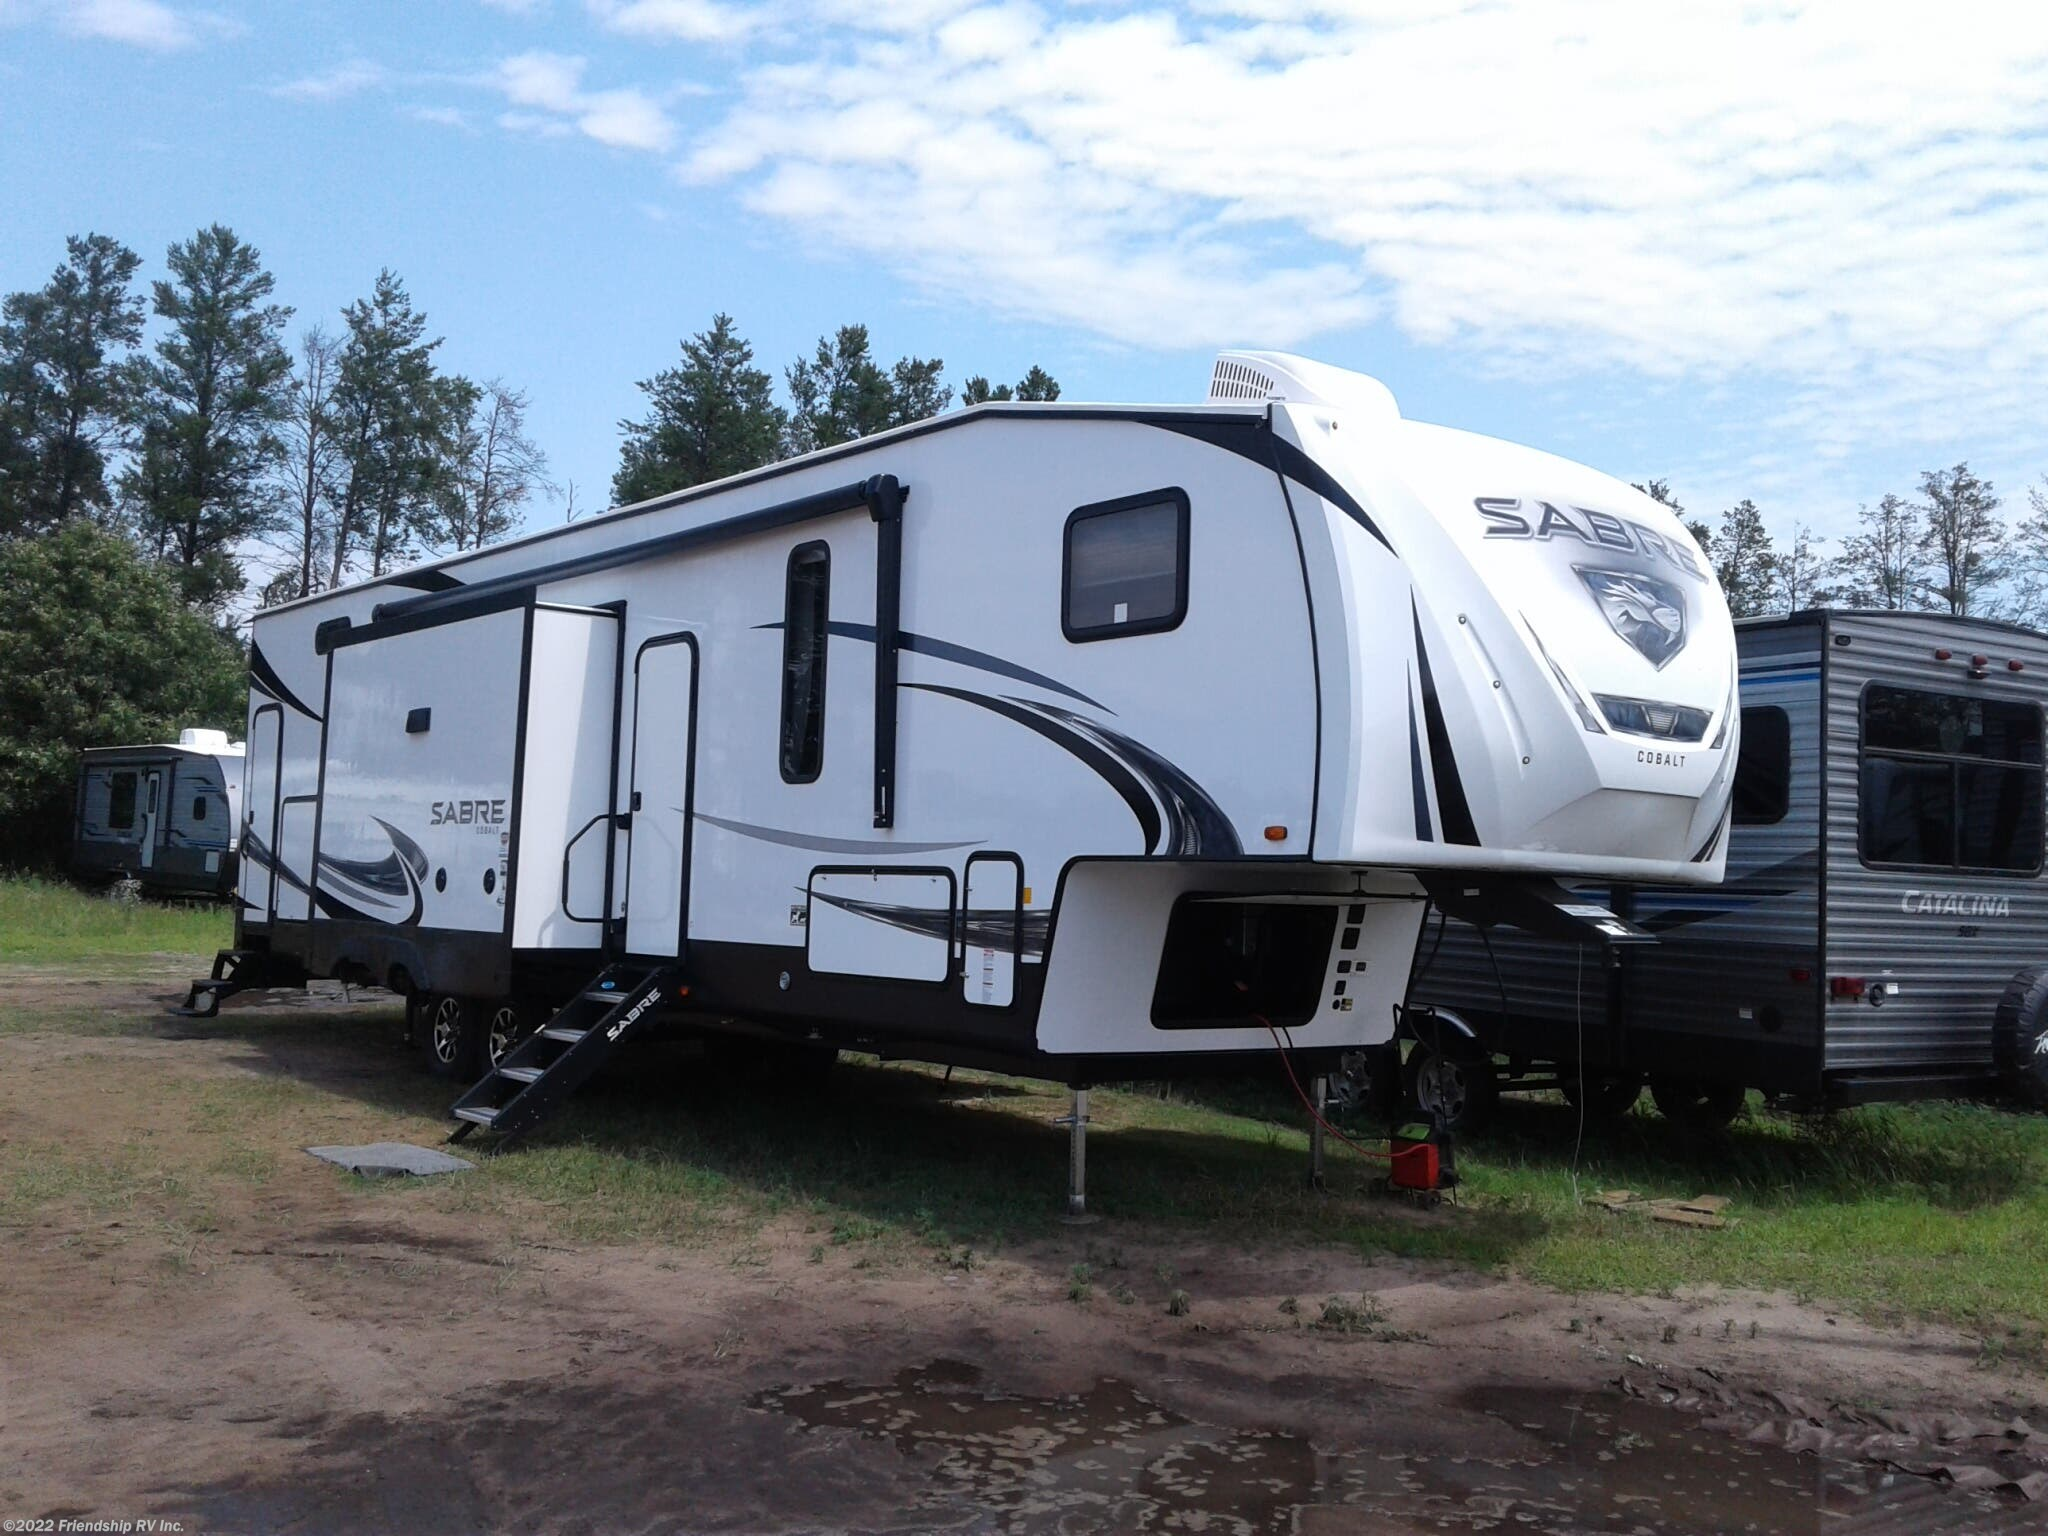 Forest River Rvs >> 2020 Forest River Rv Sabre 38dbq For Sale In Friendship Wi 53934 Nf1736